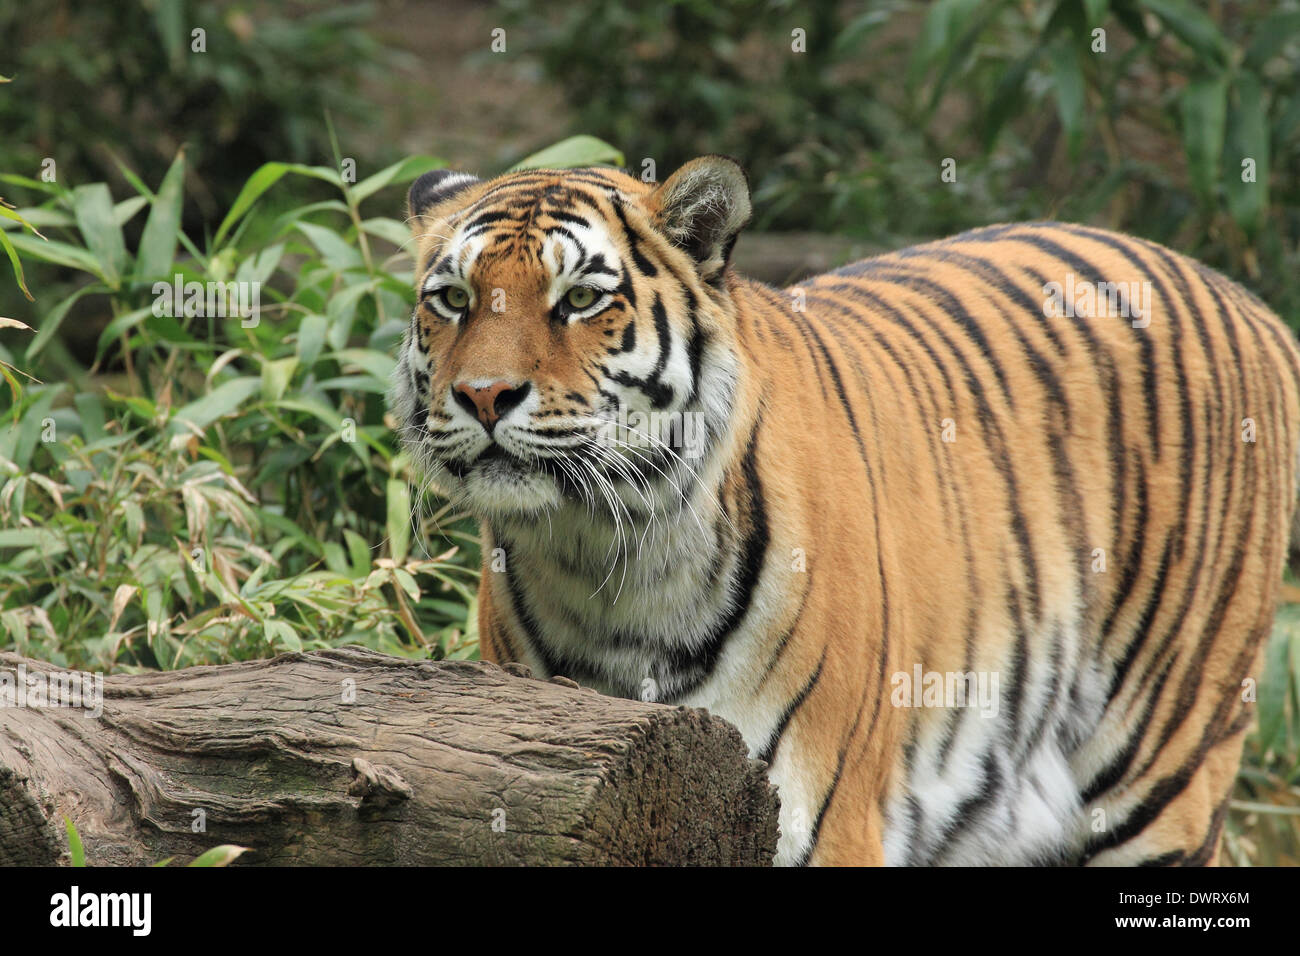 Tiger, Fierce - Stock Image